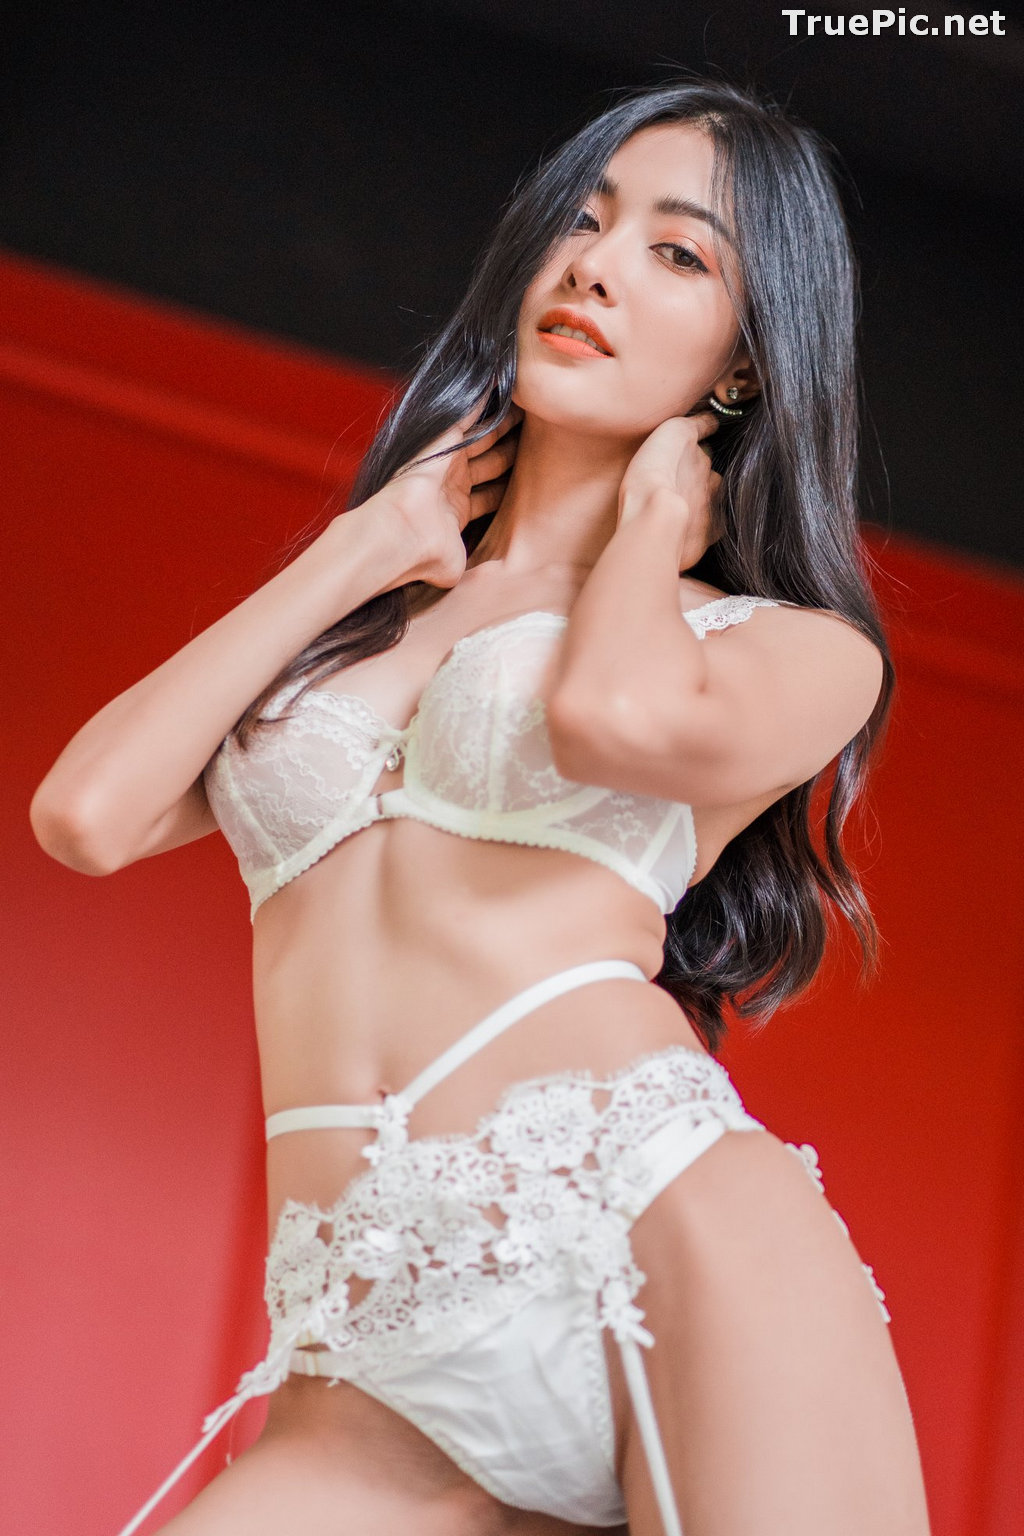 Image Thailand Model – Mutmai Onkanya Pakpean – Beautiful Picture 2020 Collection - TruePic.net - Picture-10